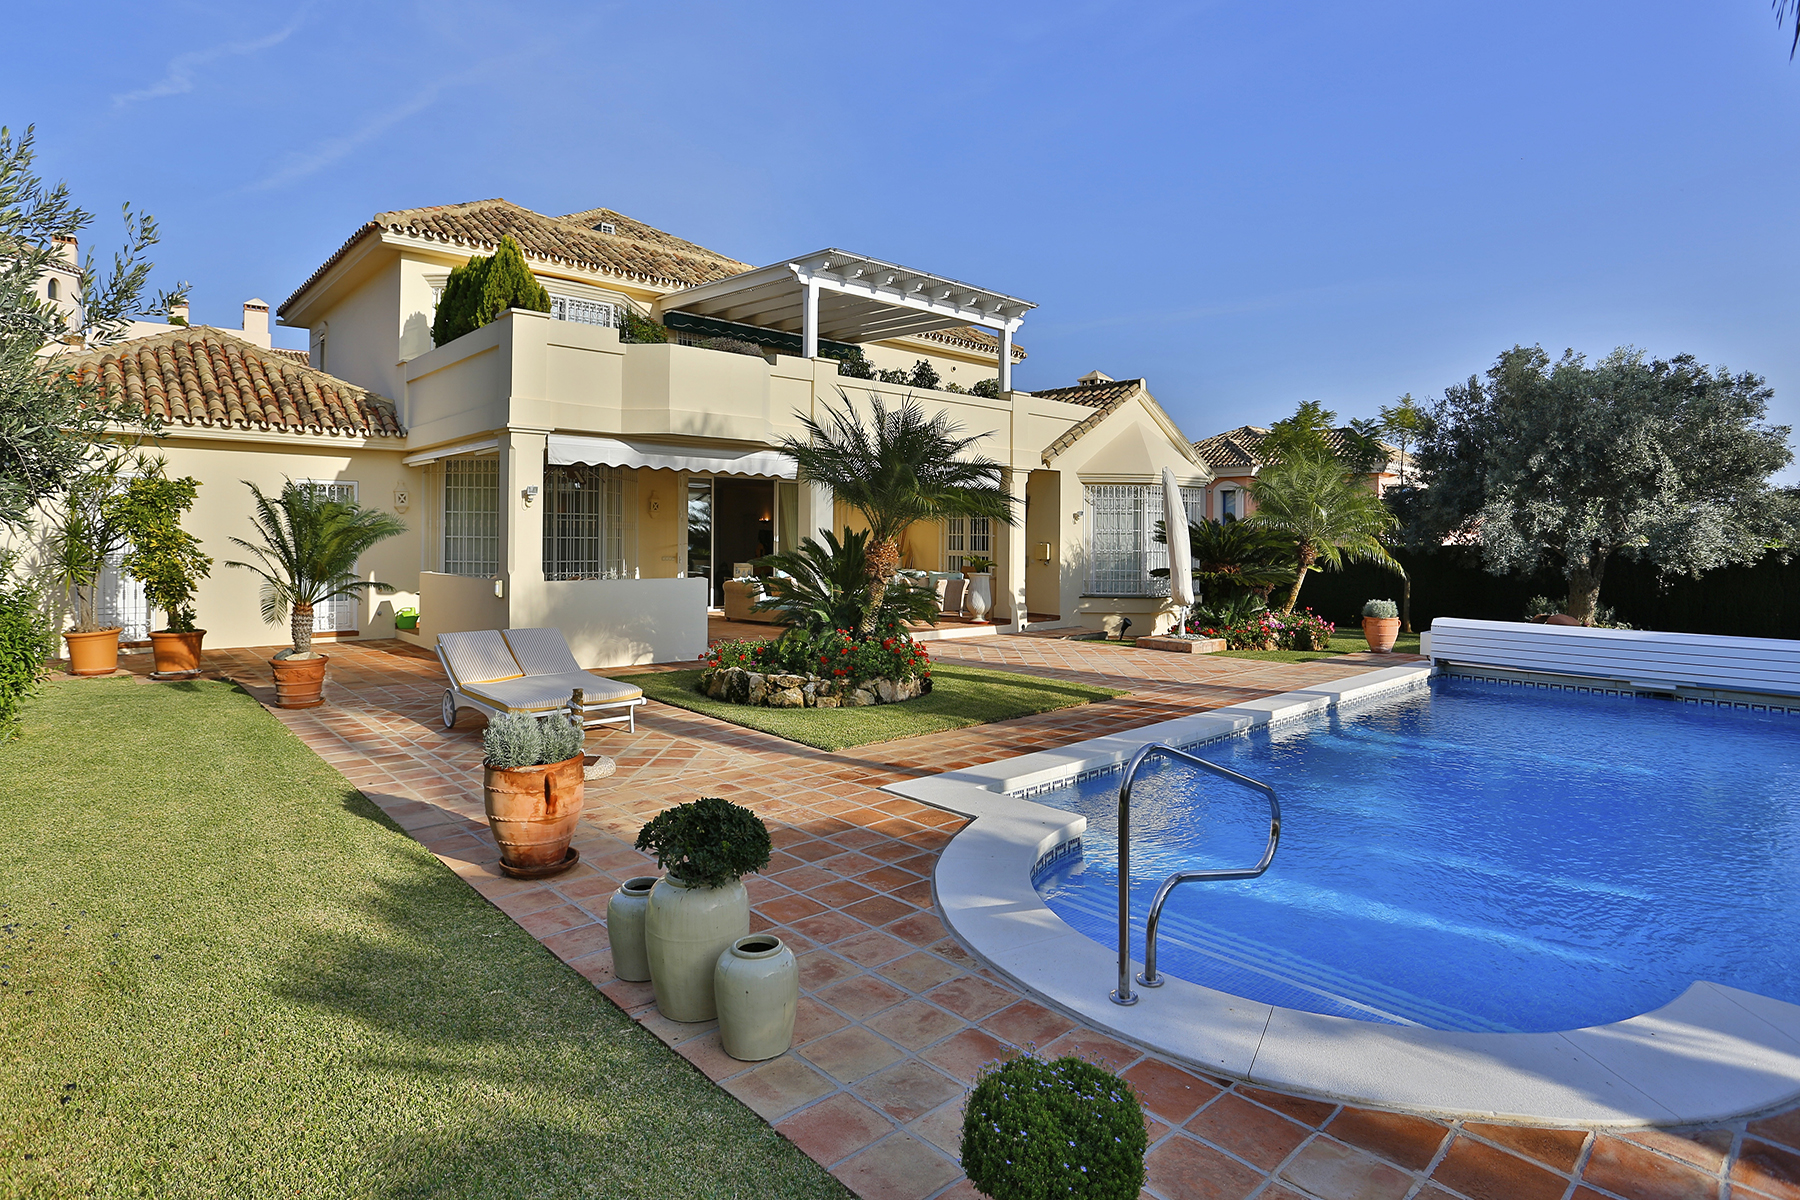 Tek Ailelik Ev için Satış at Impeccable villa with excellent qualities Santa María Golf Marbella, Costa Del Sol, 29600 Ispanya